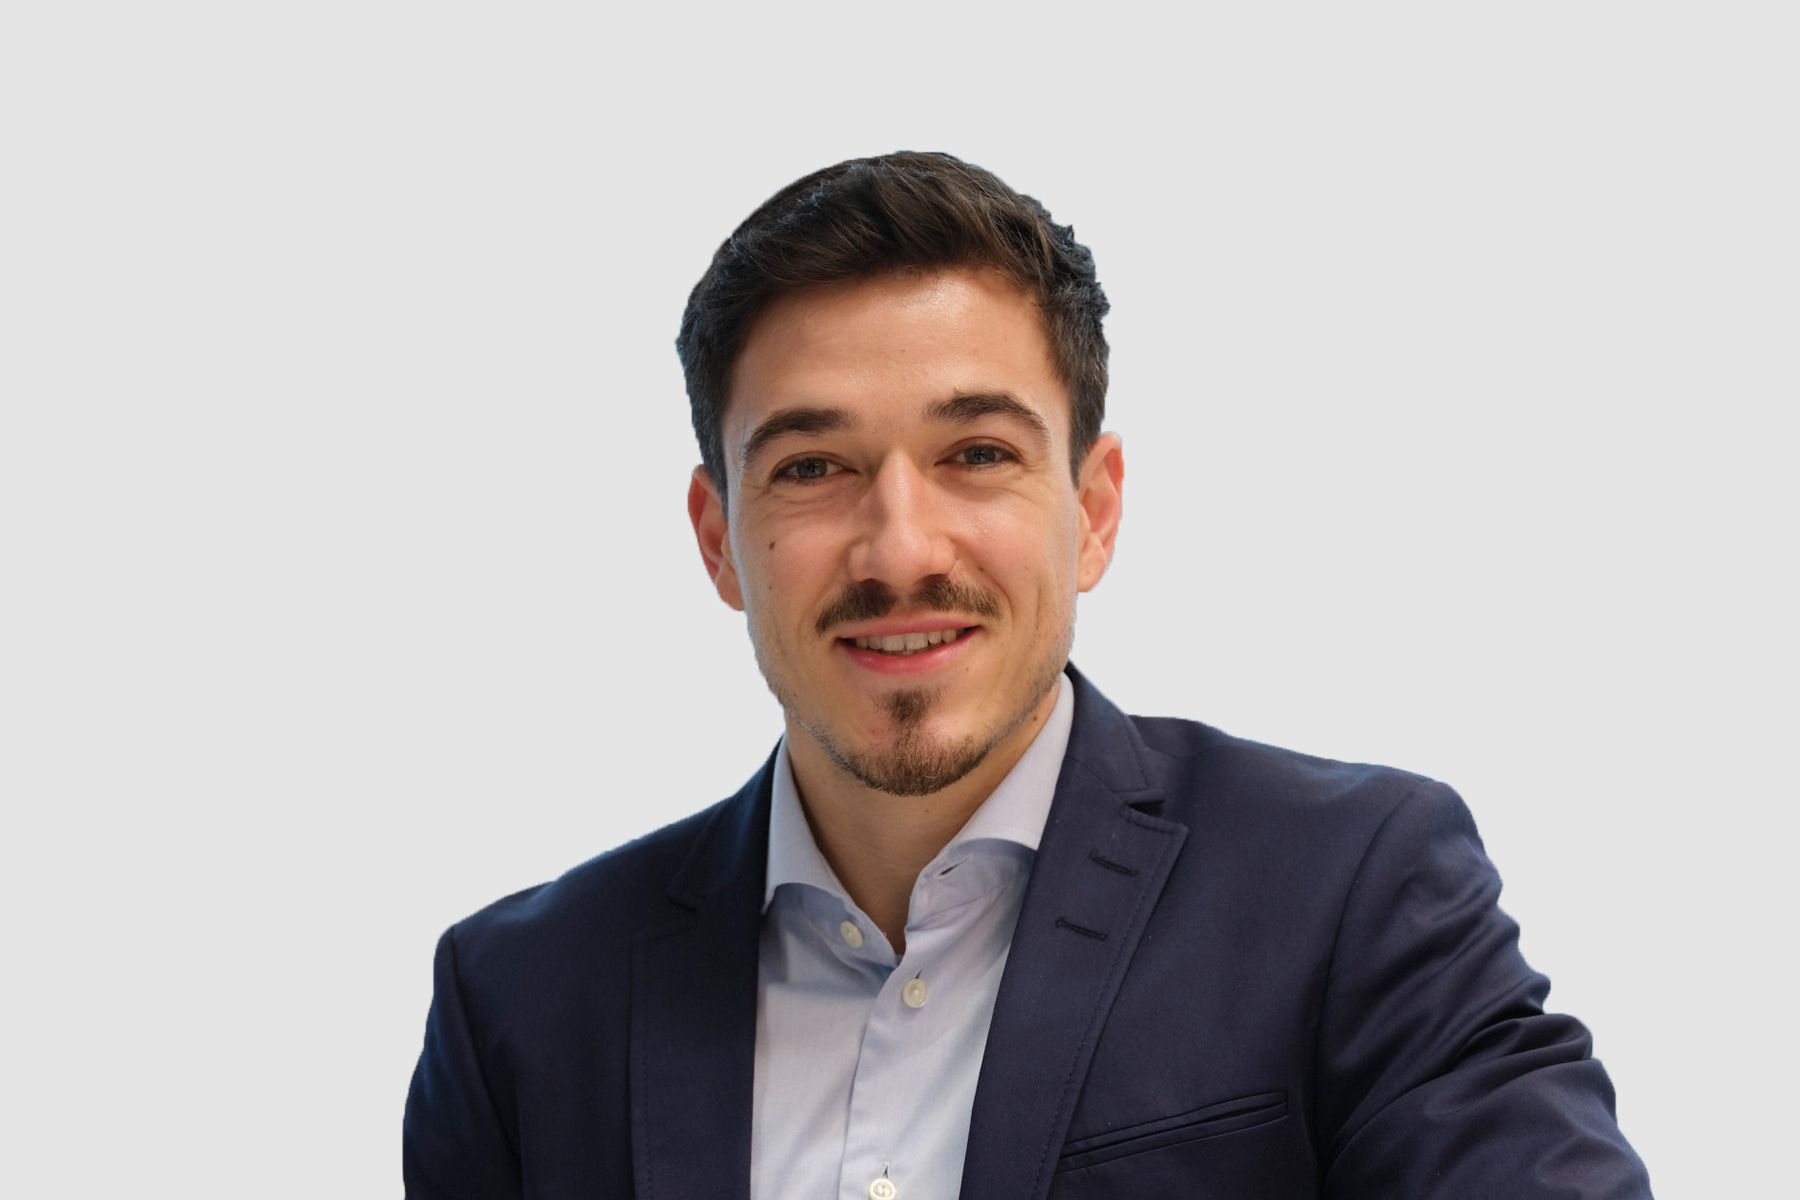 Our people: Sandro